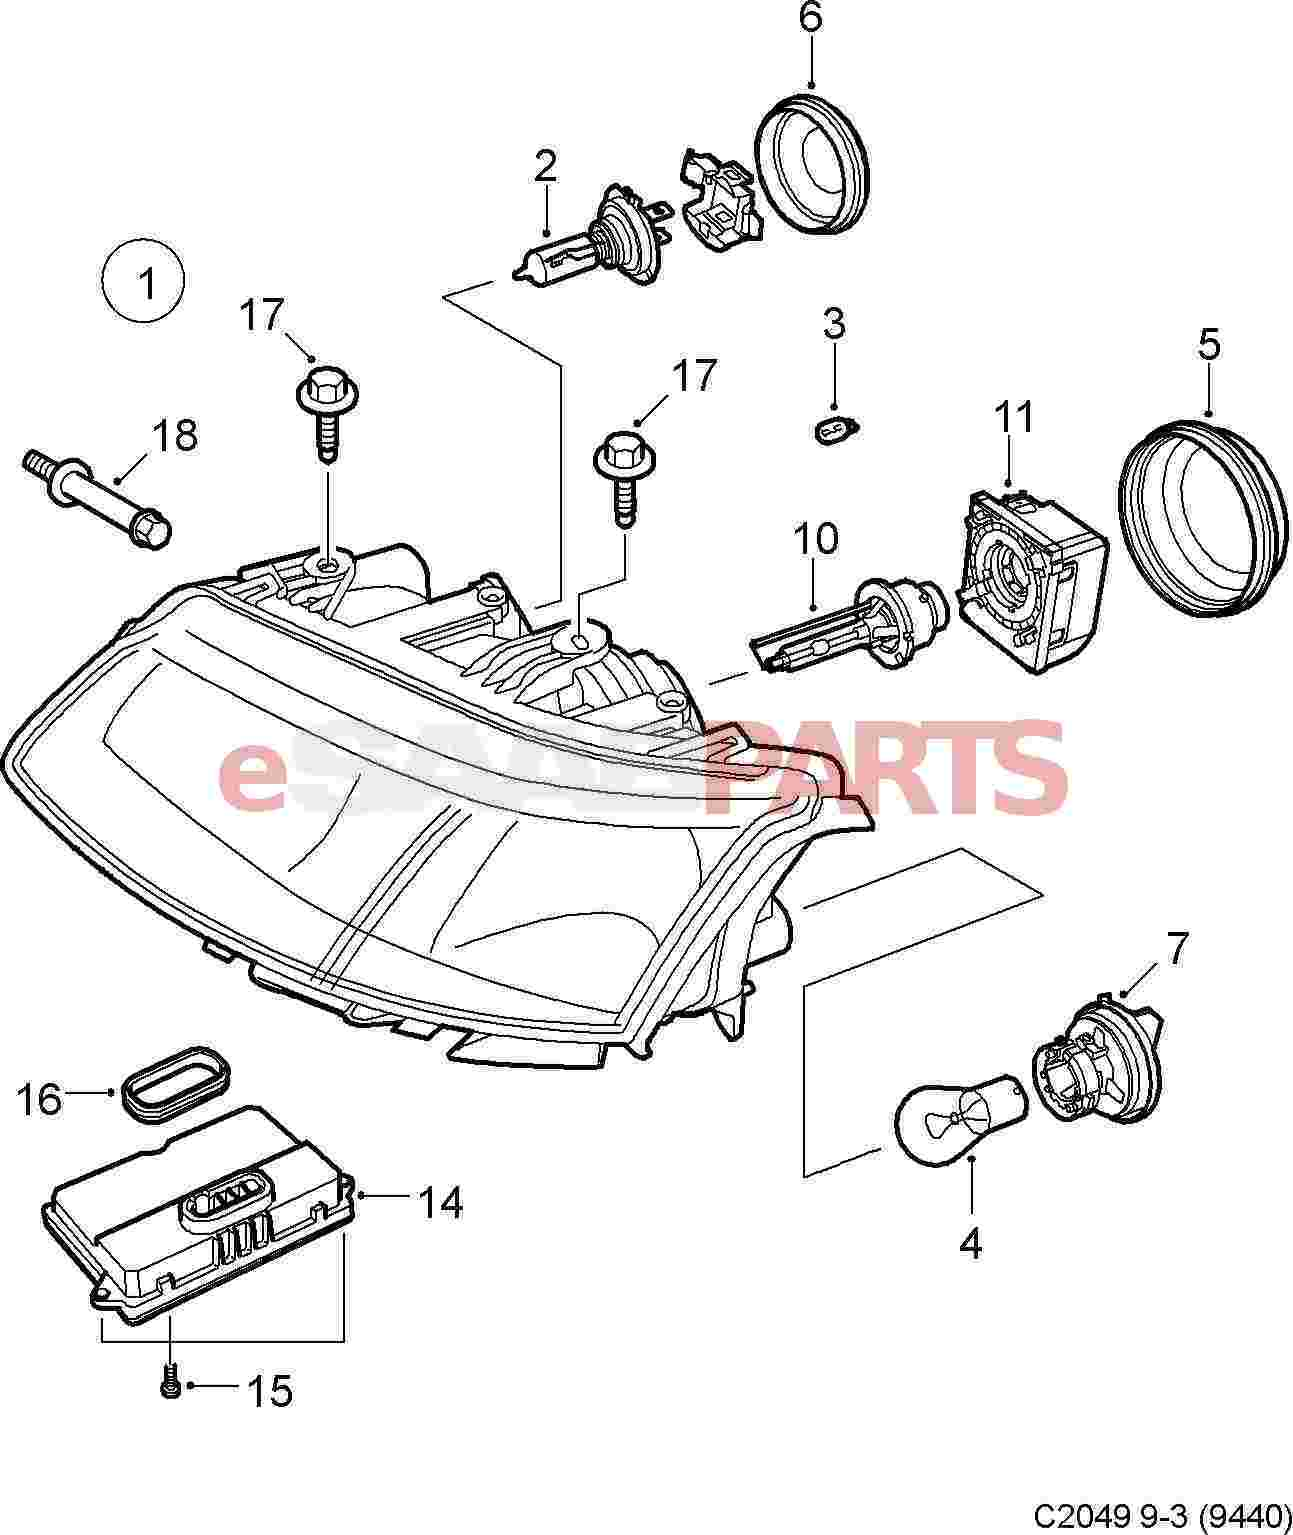 C5 Corvette Headlight Diagram